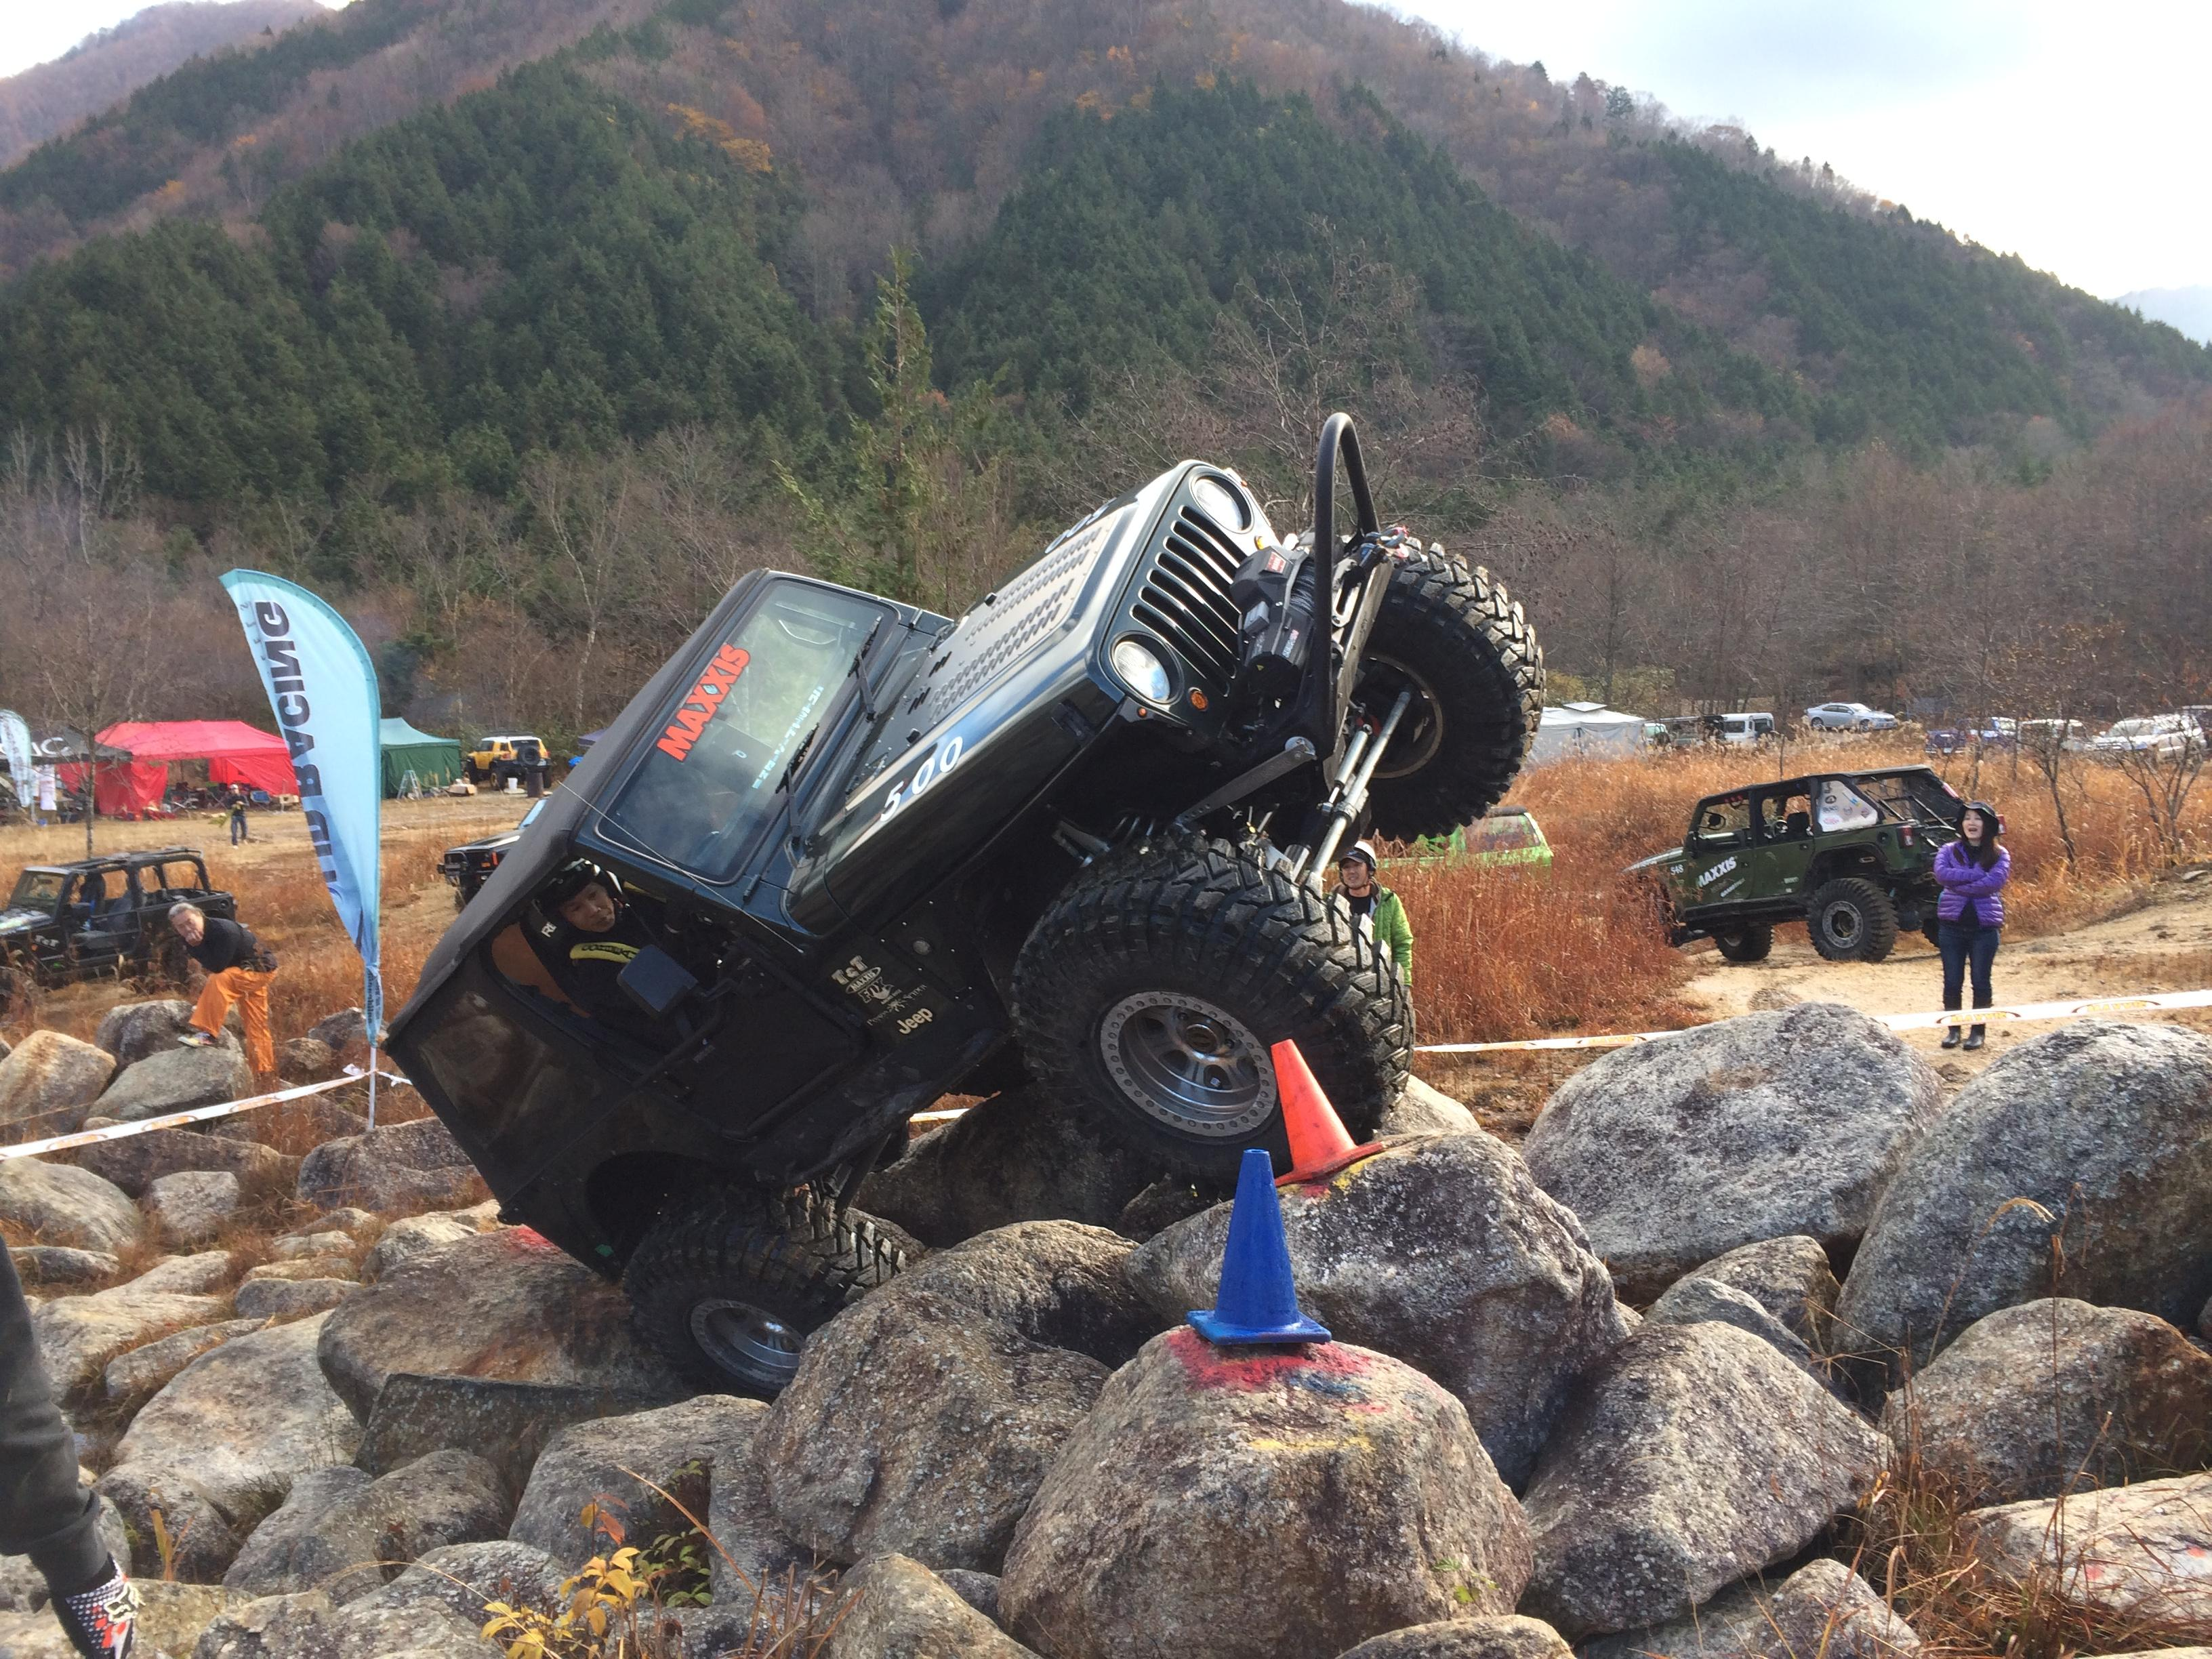 OCJC Rock Crawling Final